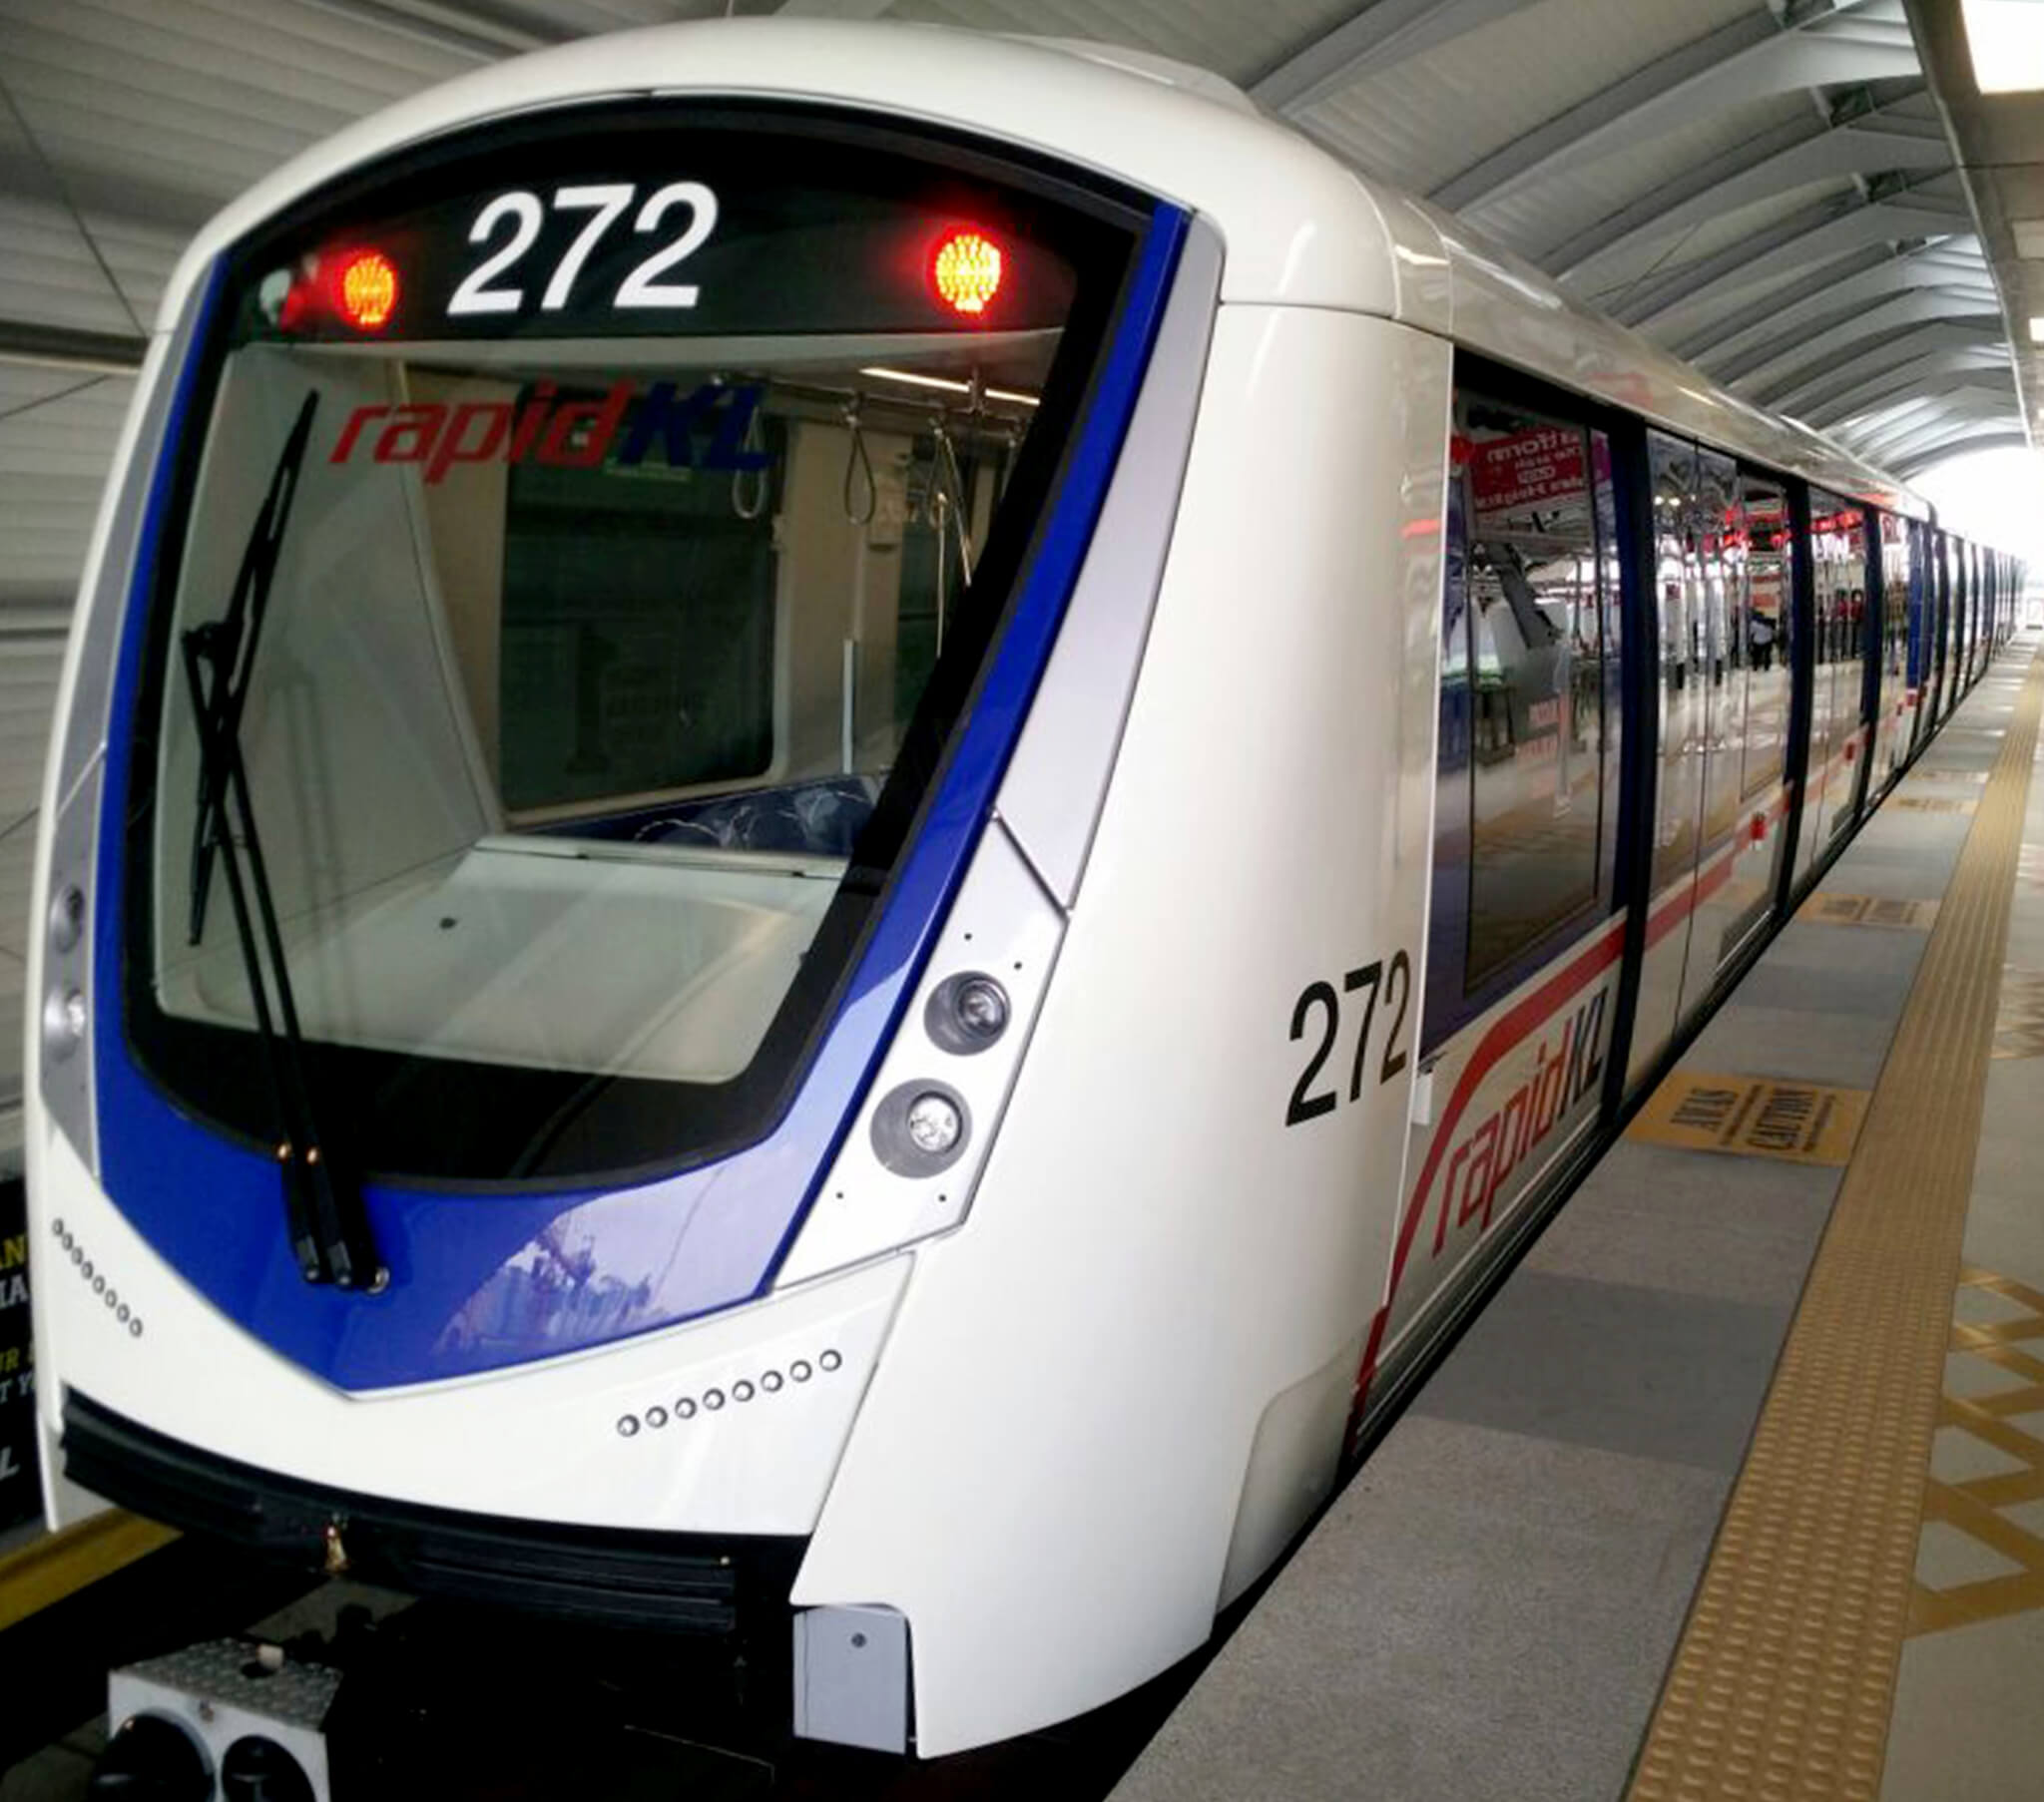 Railway News Metro Car Manufacturers Suppliers Products Automatic Gate Control System With High Speed Alerting Bombardier Completes Delivery Of Driverless Trains For Kuala Lumpur